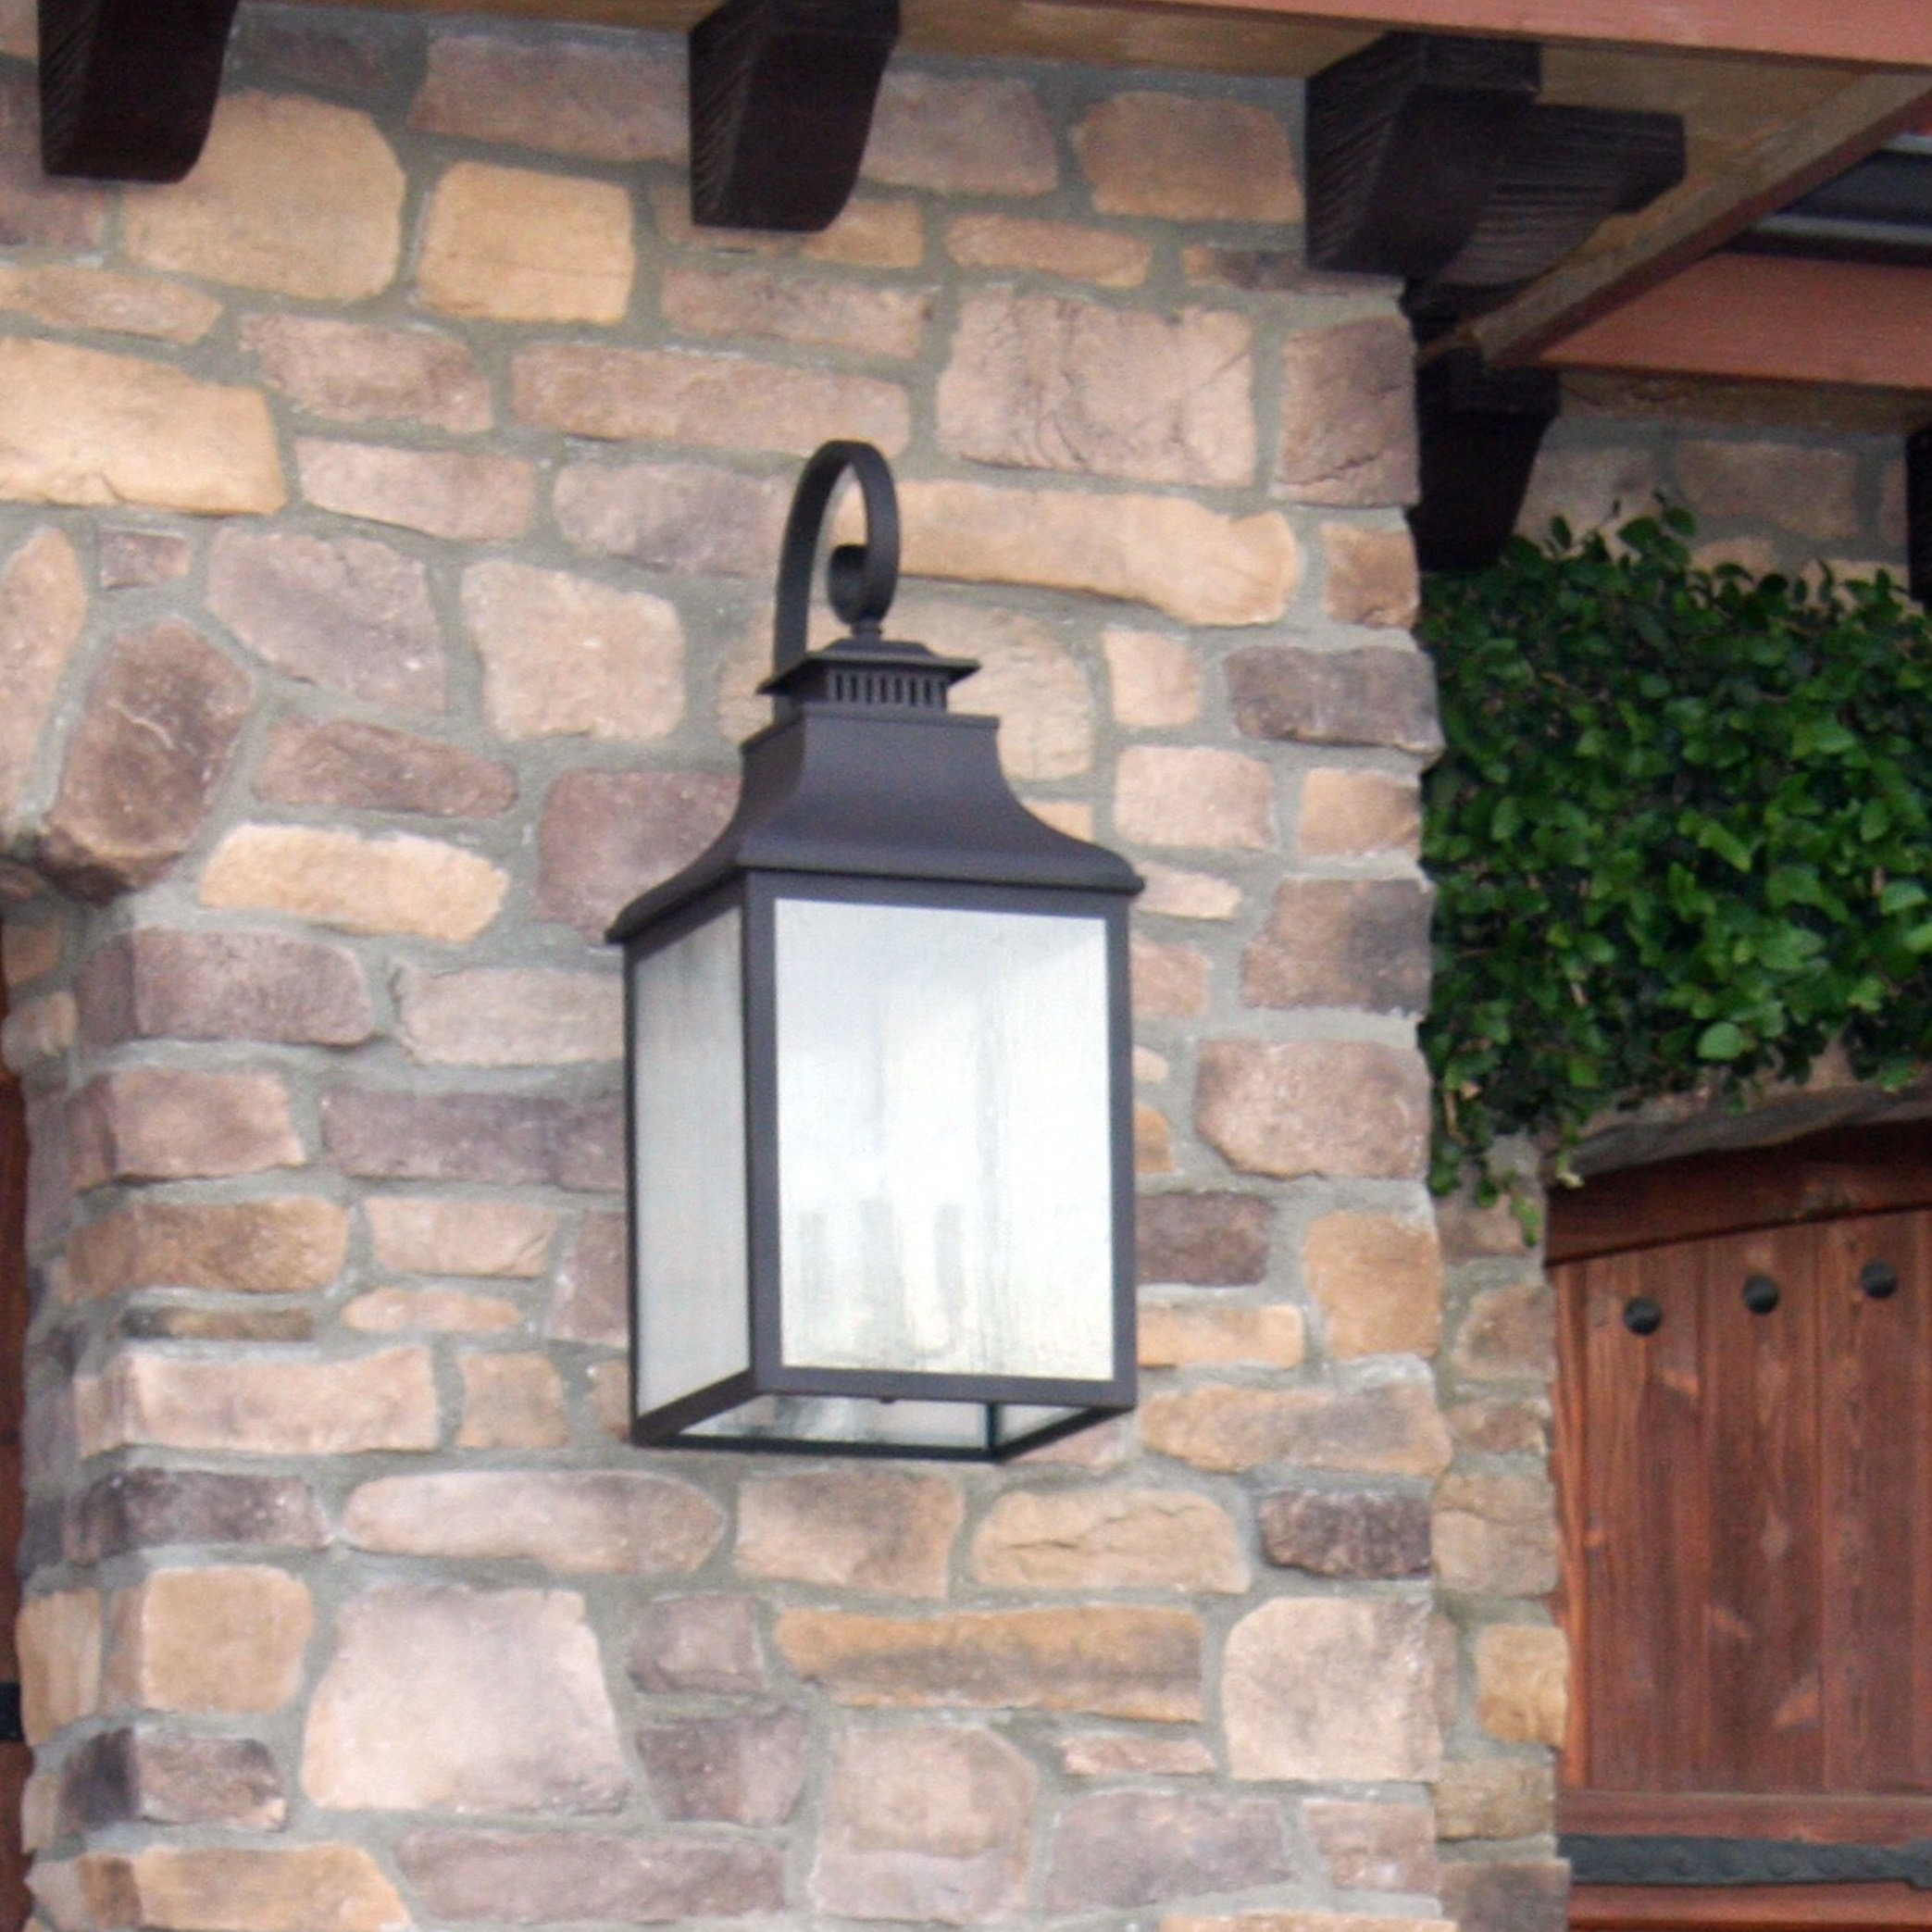 Y Decor | Wayfair With Regard To Outdoor Lighting And Light Fixtures At Wayfair (View 14 of 15)